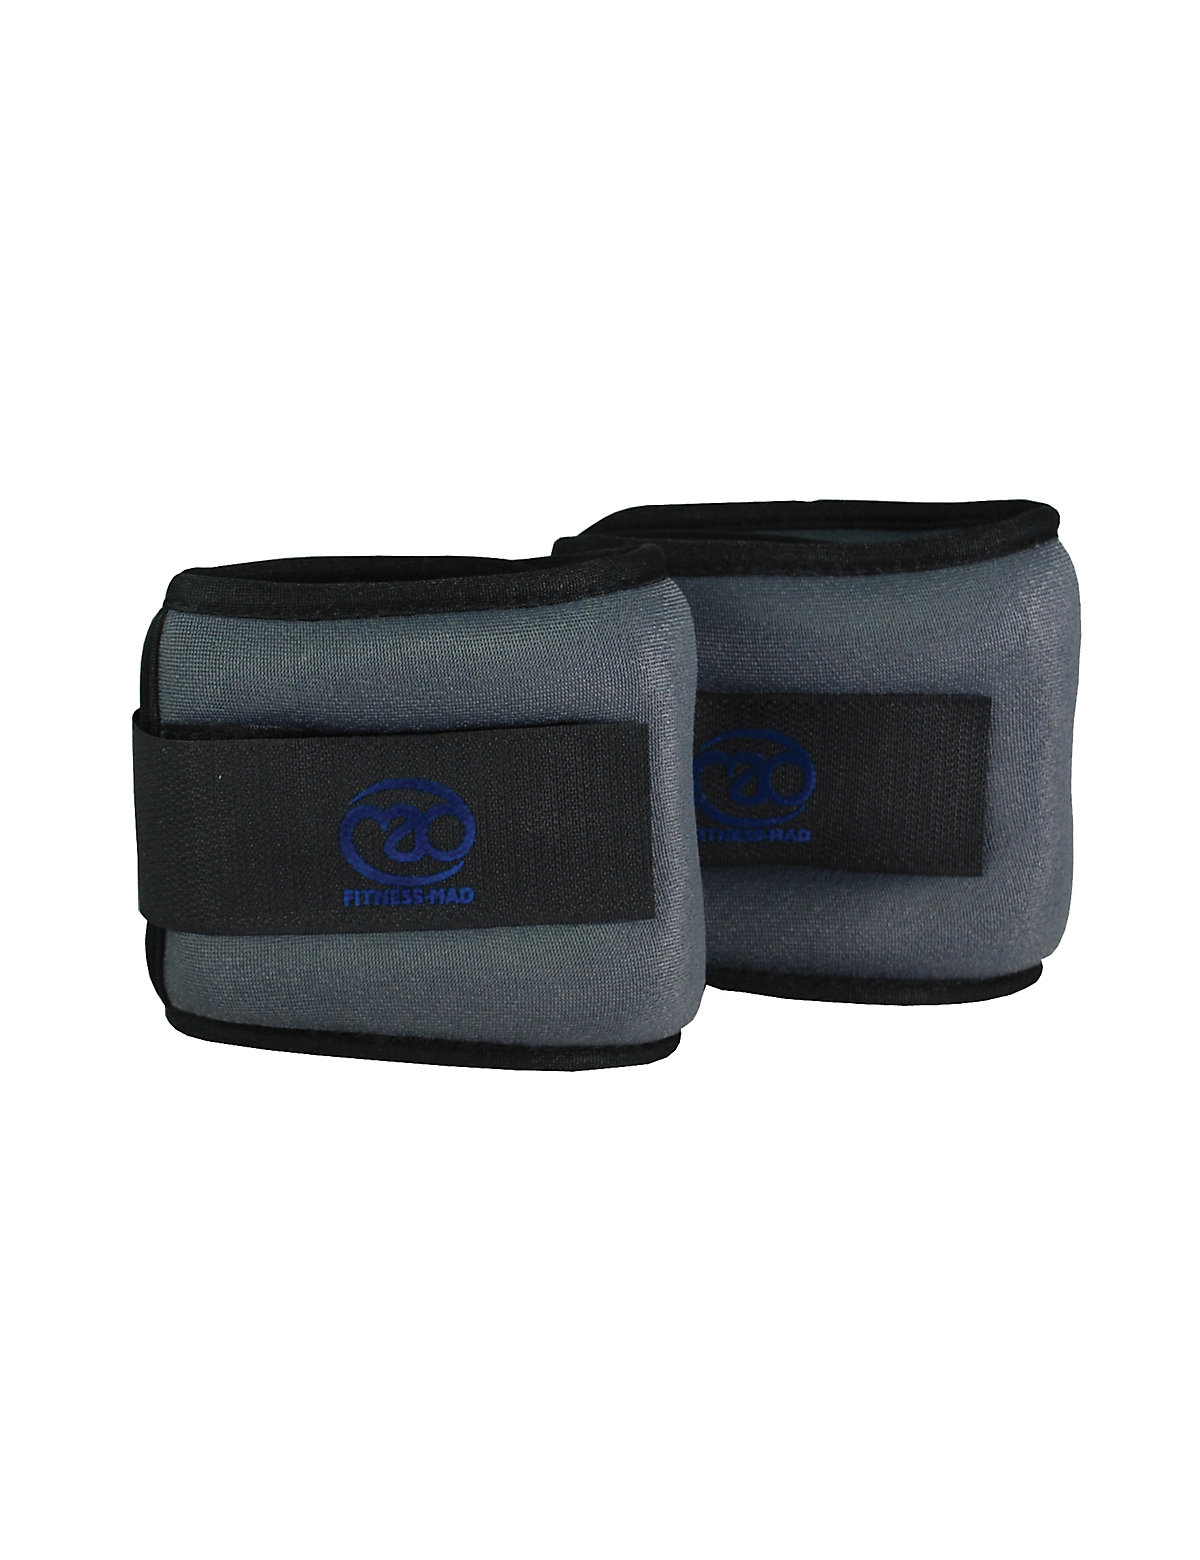 Yoga-Mad Set of 2 Wrist & Ankle Weights